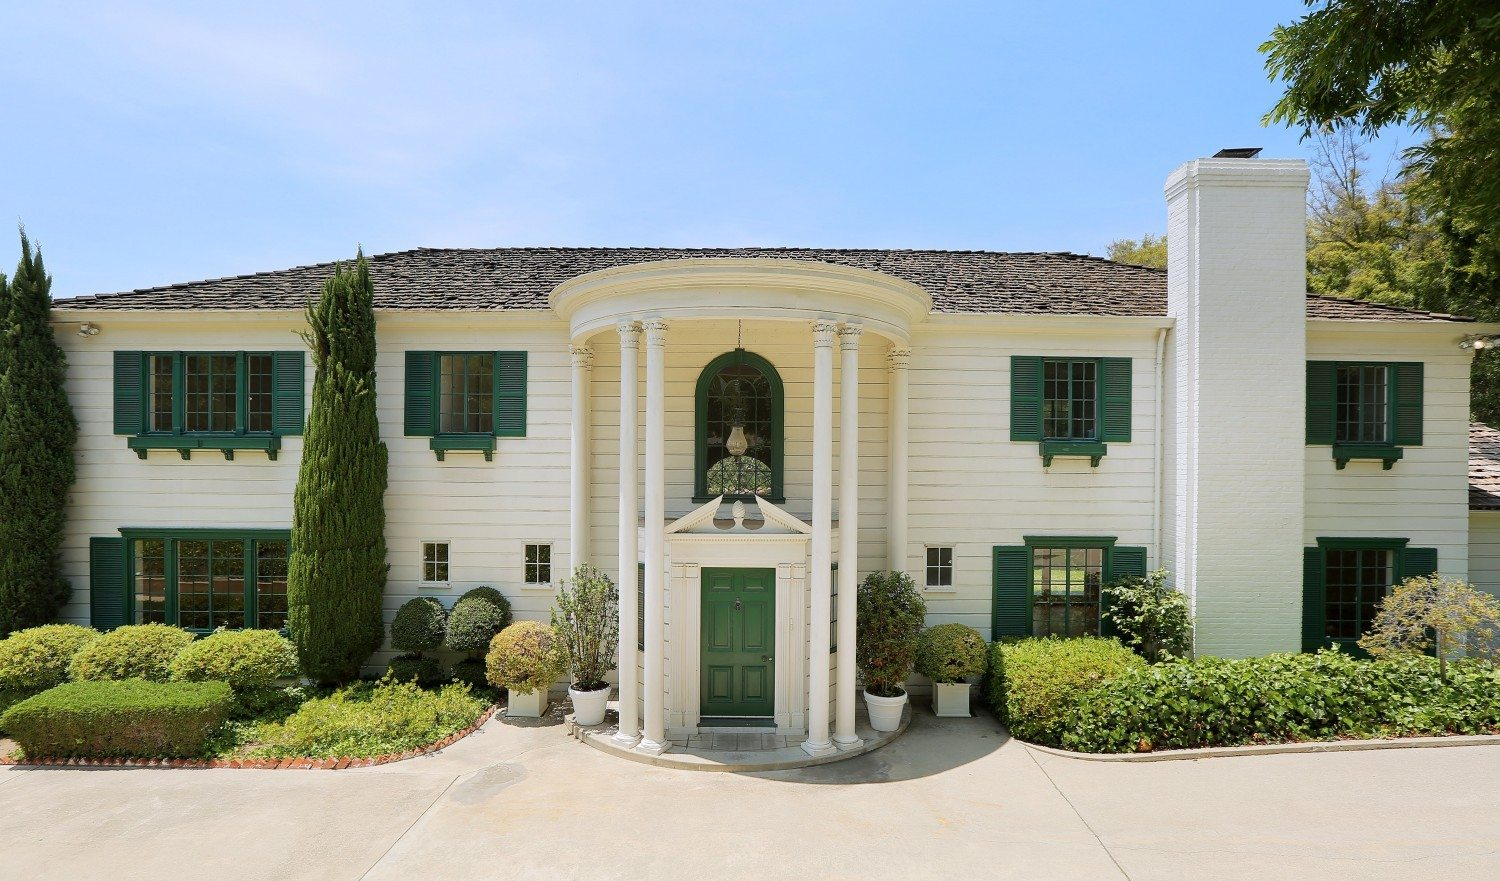 Mommie dearest mansion hits the market for 35m no wire for Crawford house